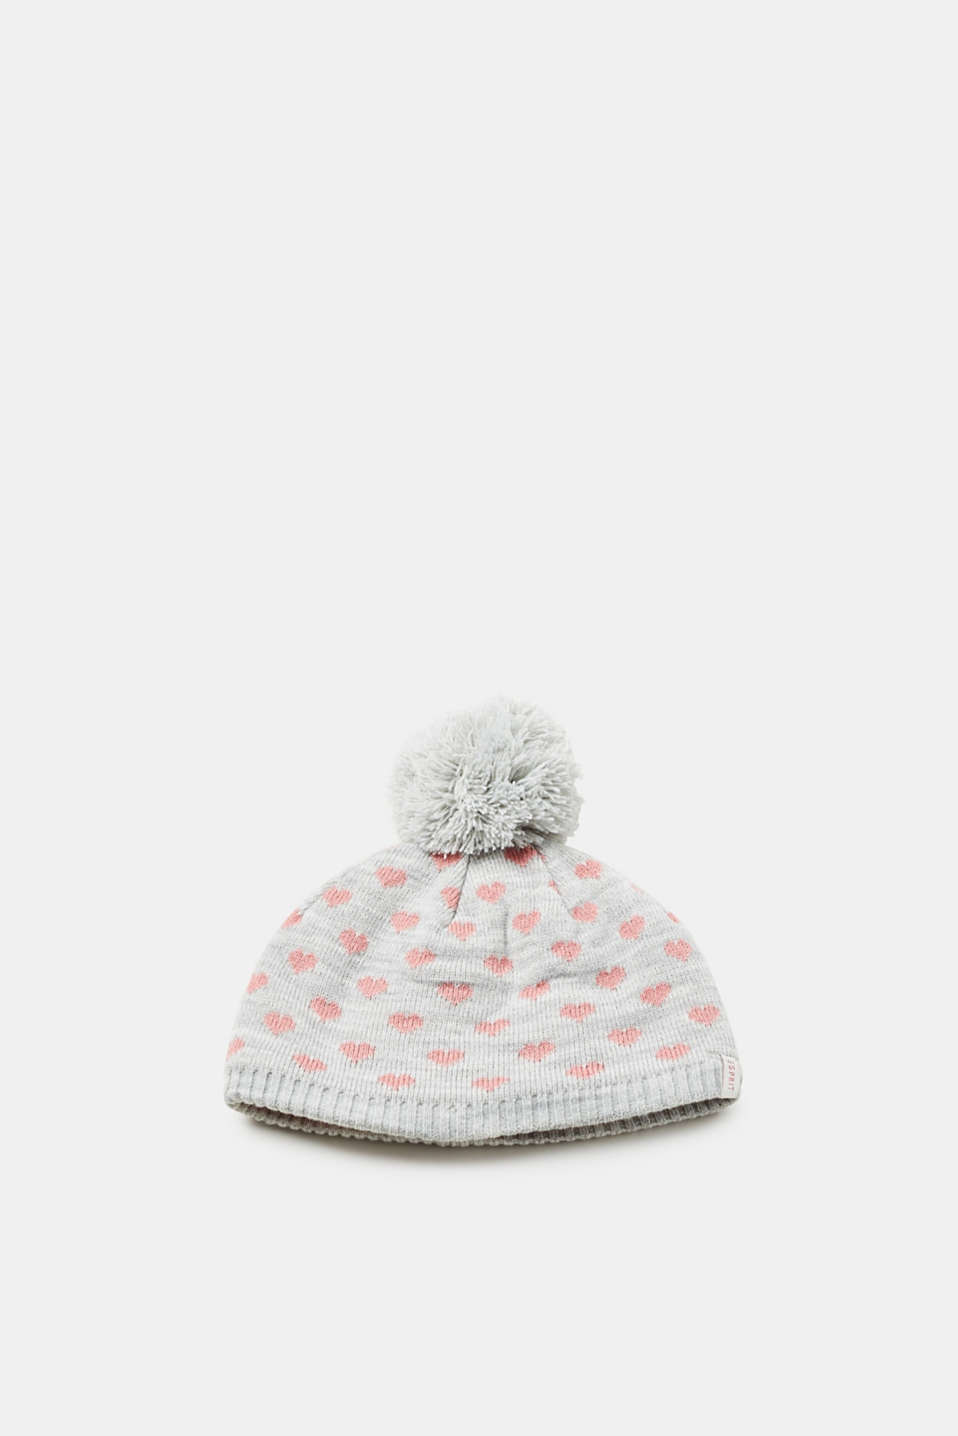 Esprit - Knitted hat with heart pattern and pompom